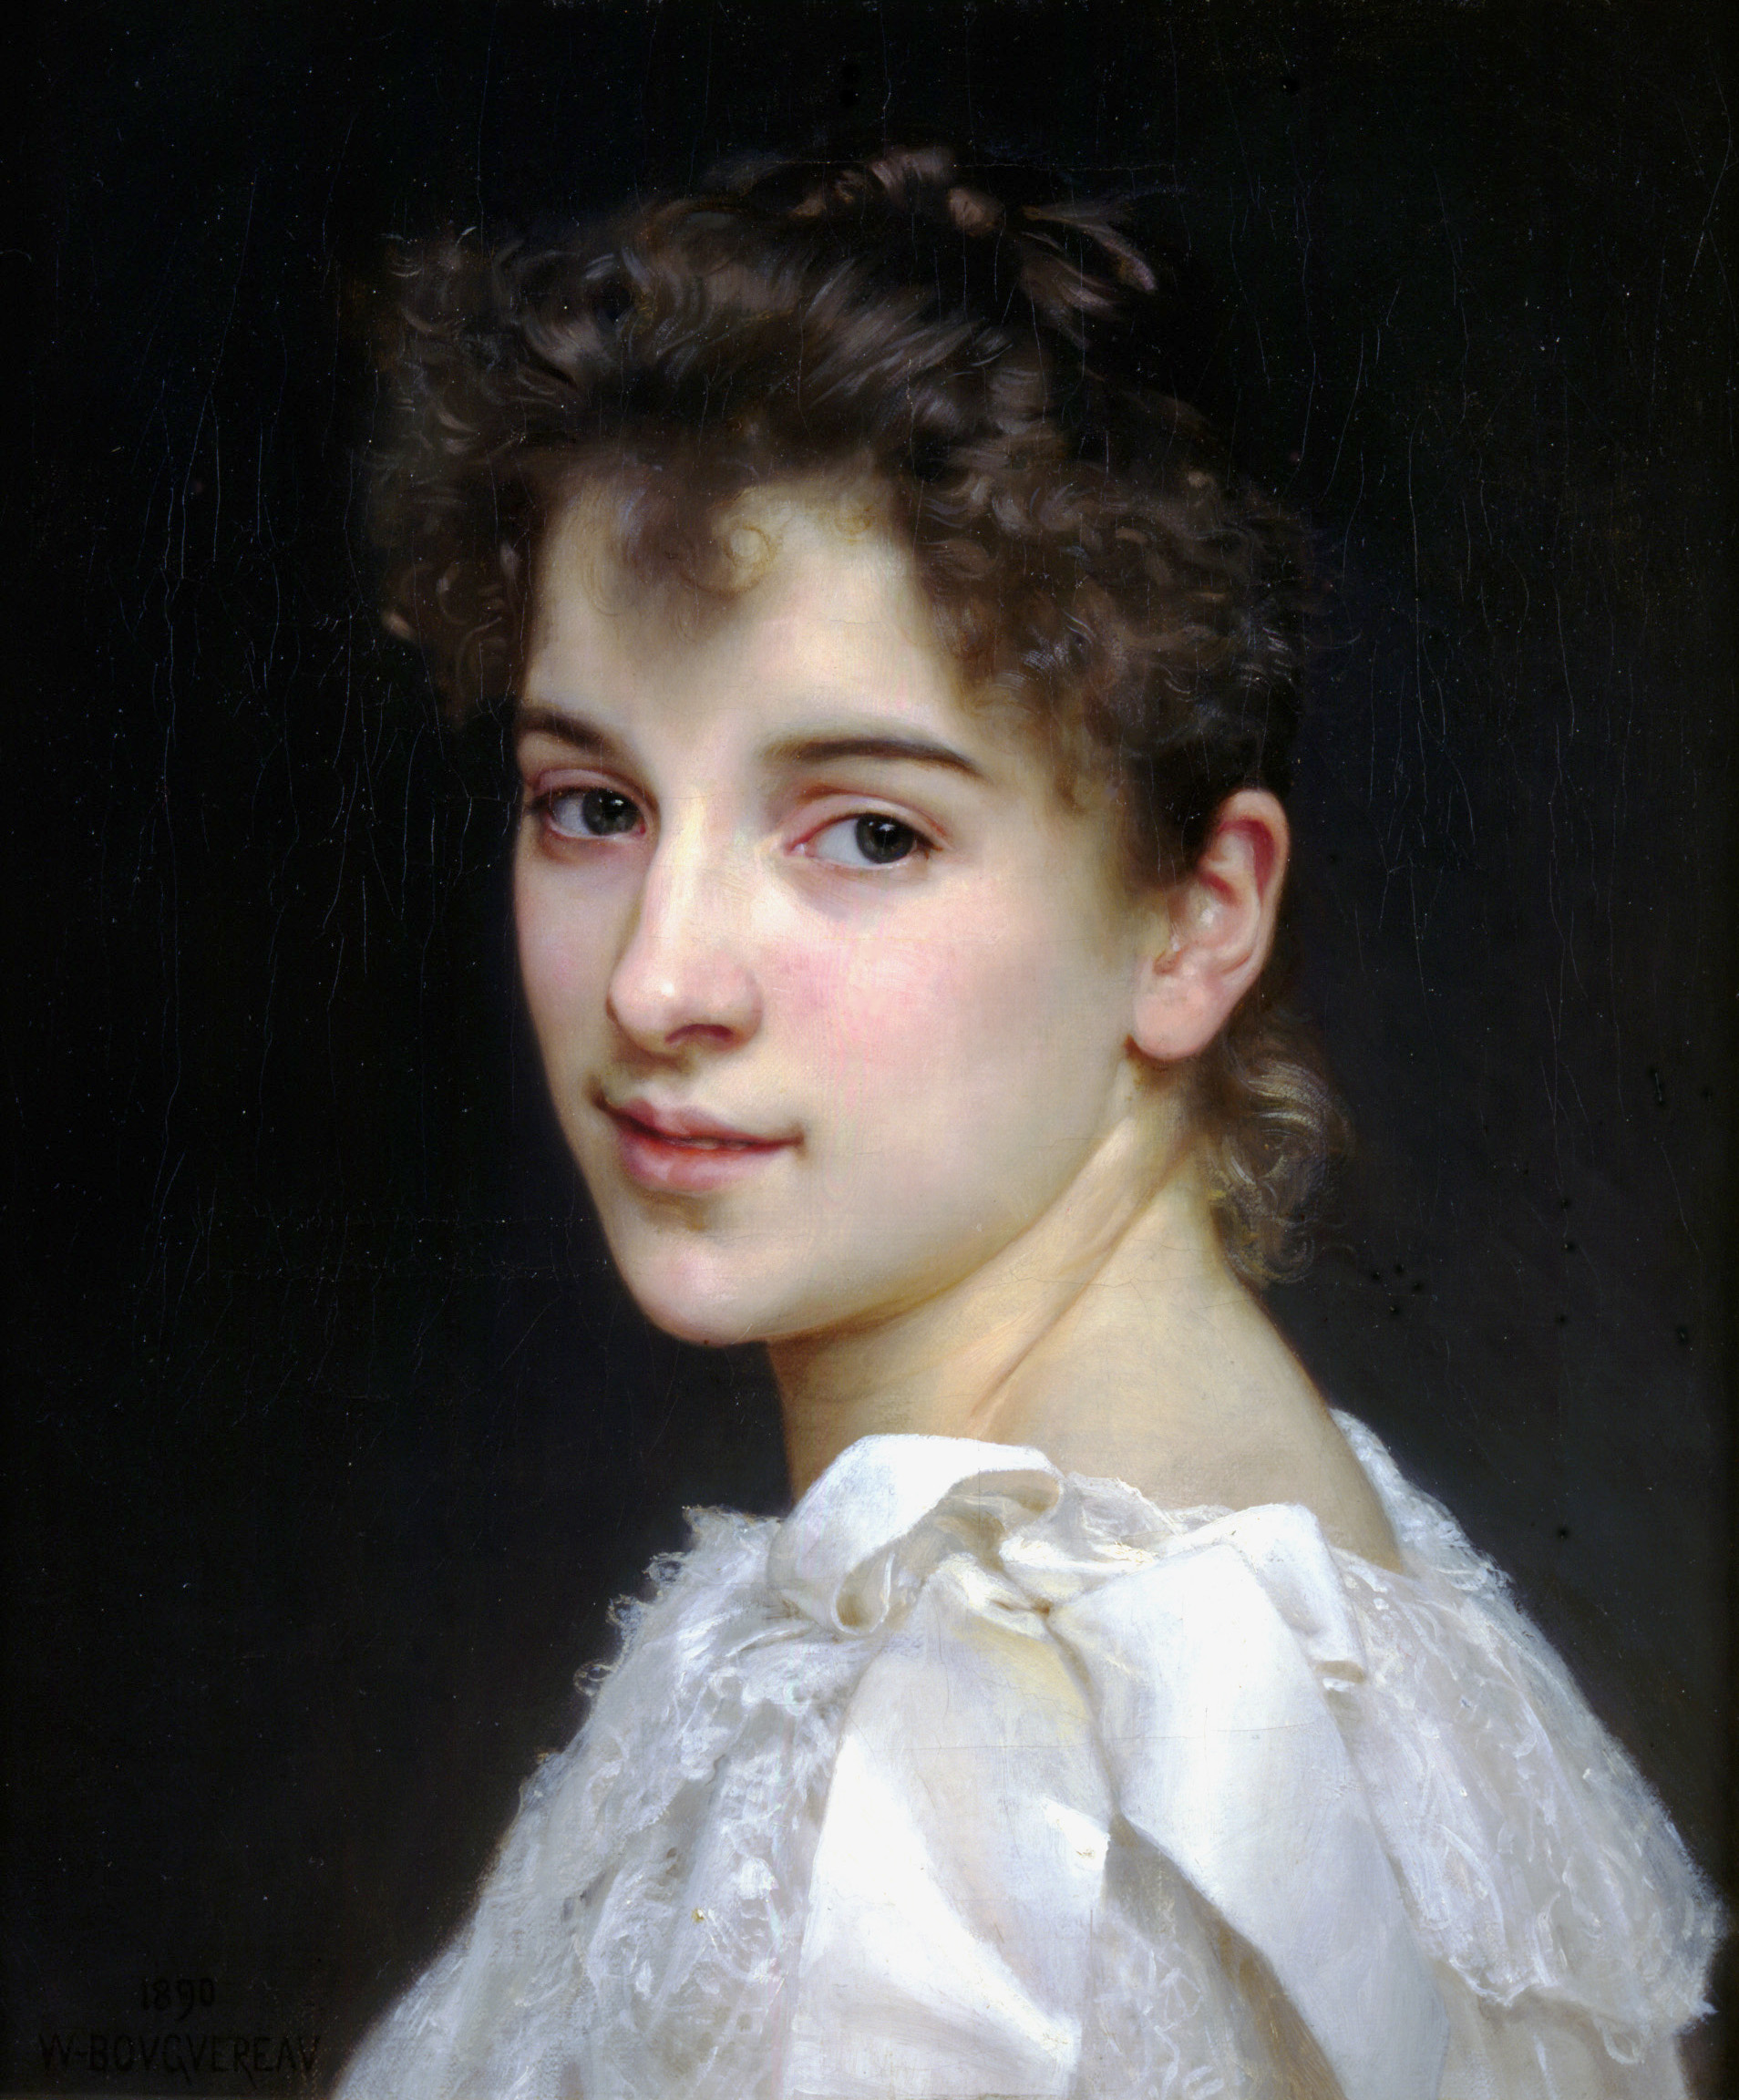 William Bouguereau (1825-1905)  Portrait de Gabrielle Cot [Portrait of Gabrielle Cot]  Oil on canvas, 1890  17 7/8 x 14 7/8 inches (45.5 x 38 cm)  Collection of Fred and Sherry Ross